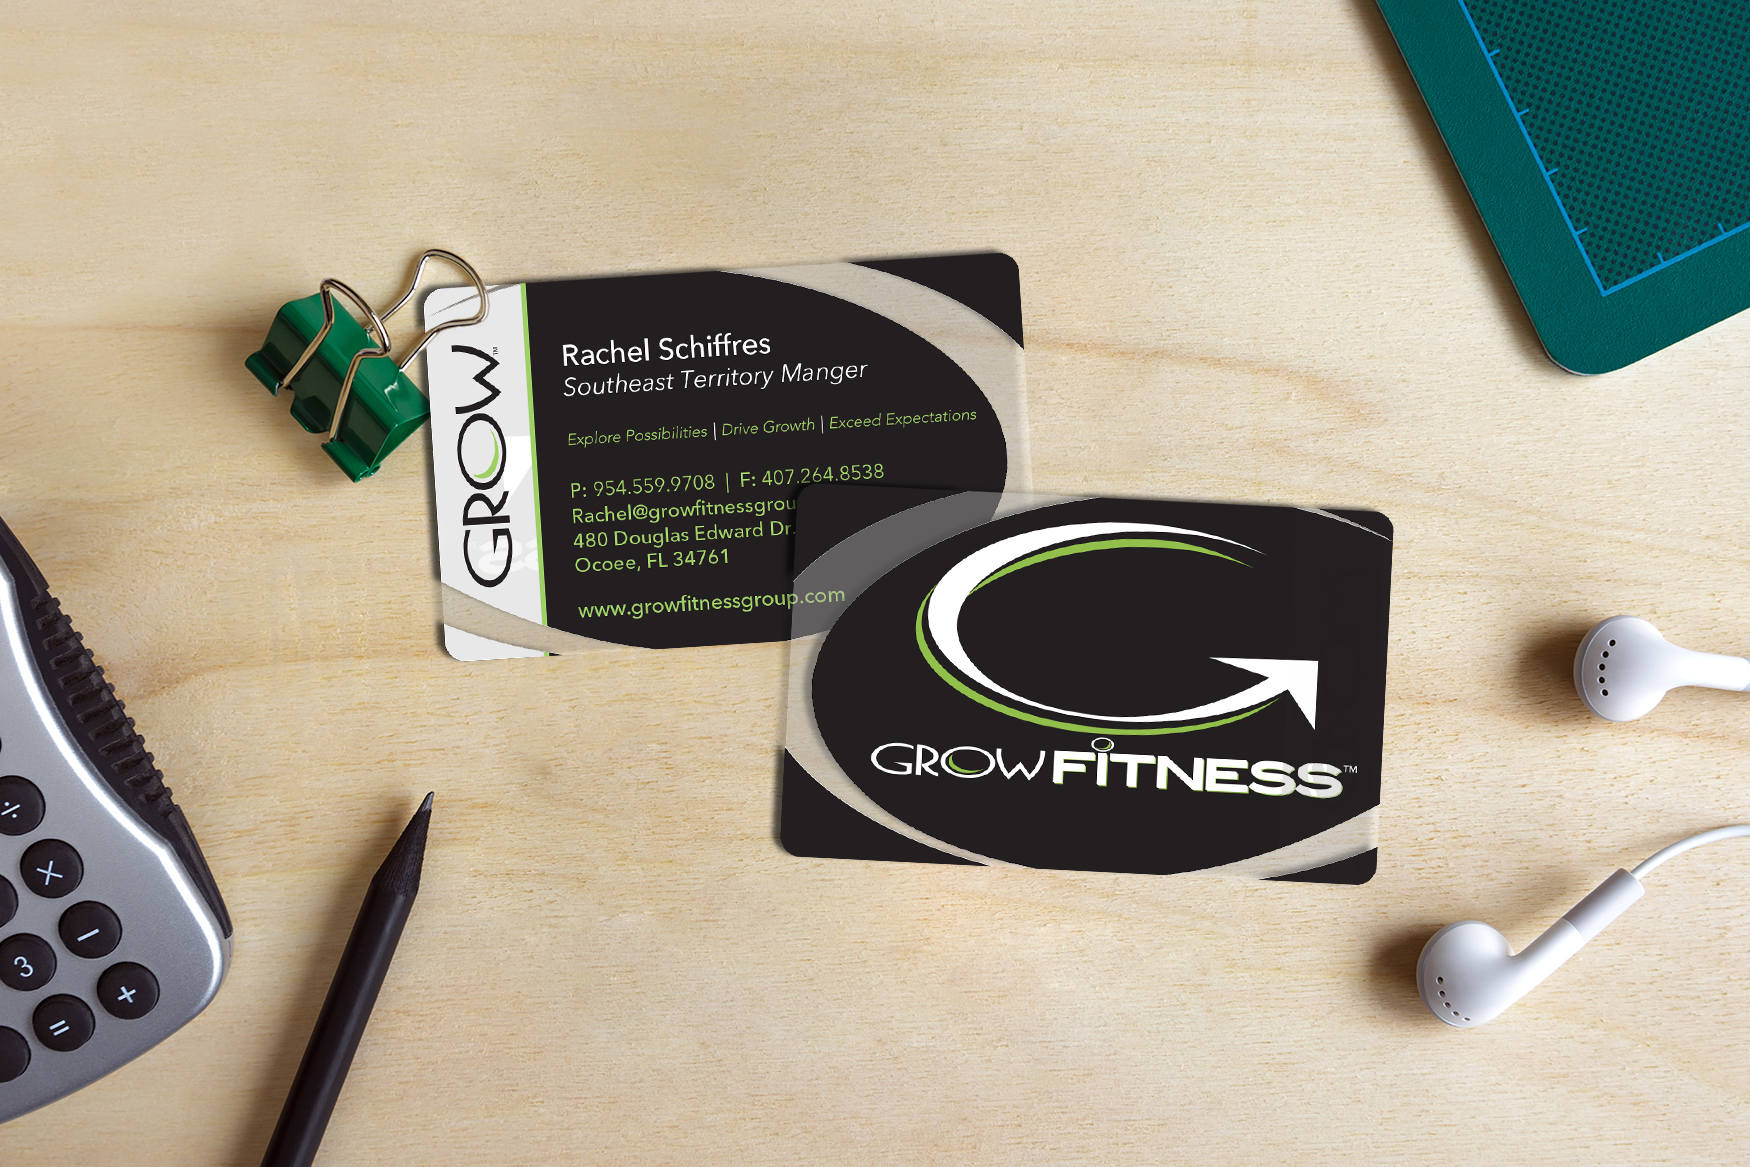 Plastic Business Cards that WOW for your Customers